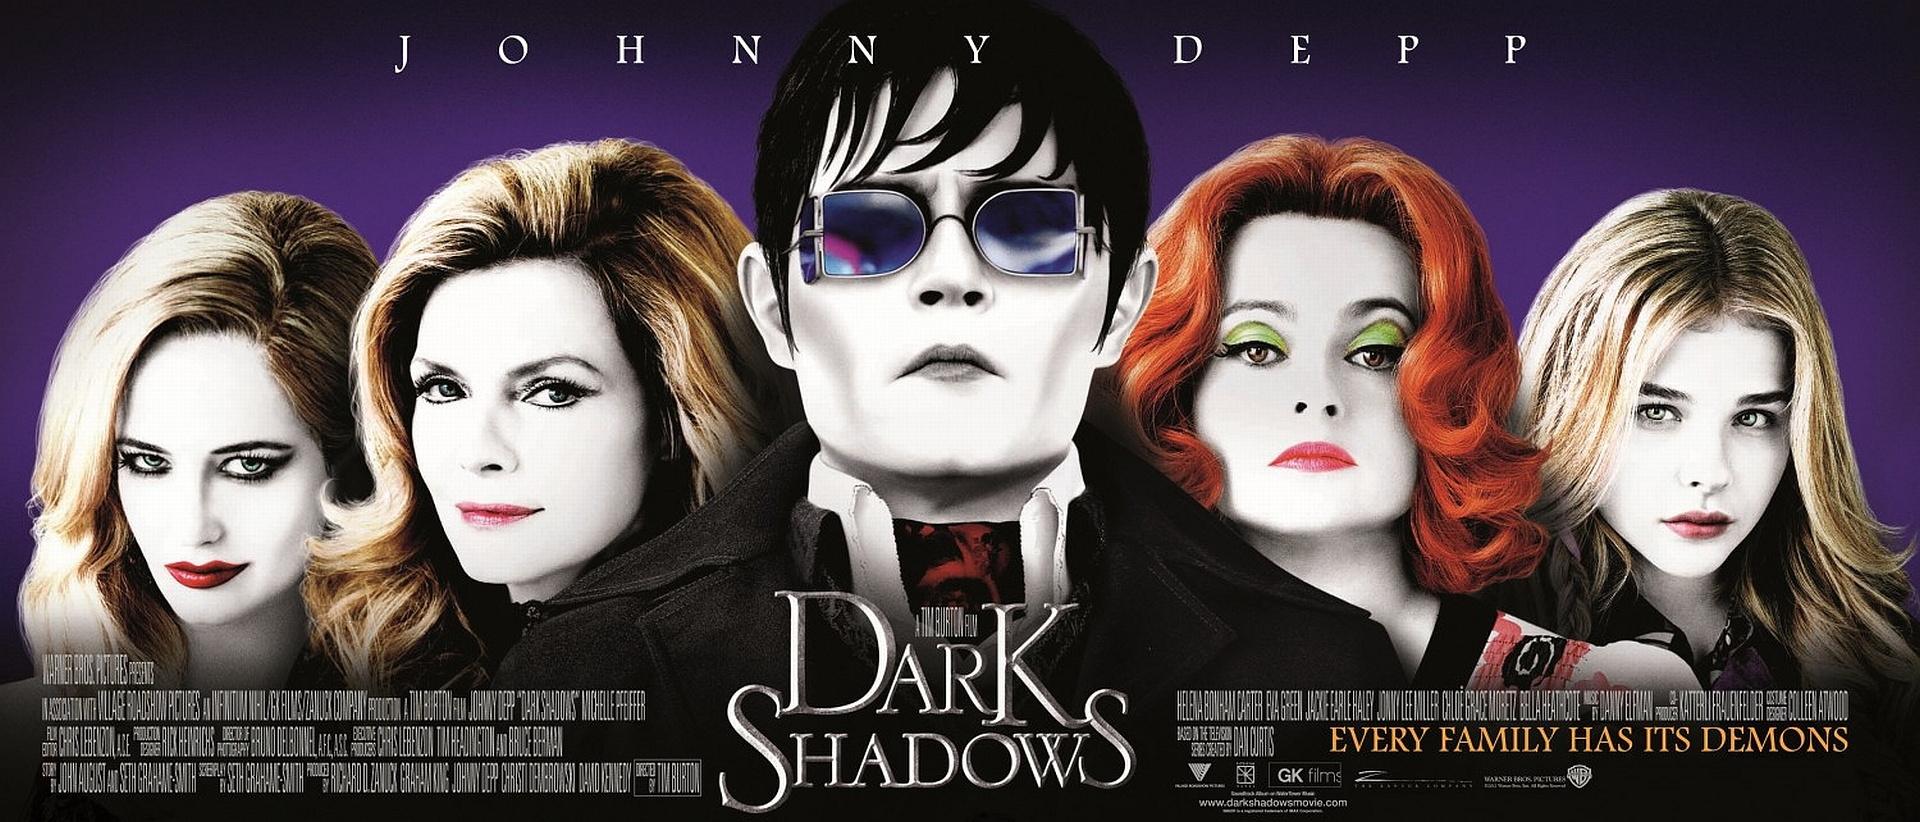 Dark shadows wallpaper and background image 1920x822 id231796 movie dark shadows wallpaper publicscrutiny Image collections